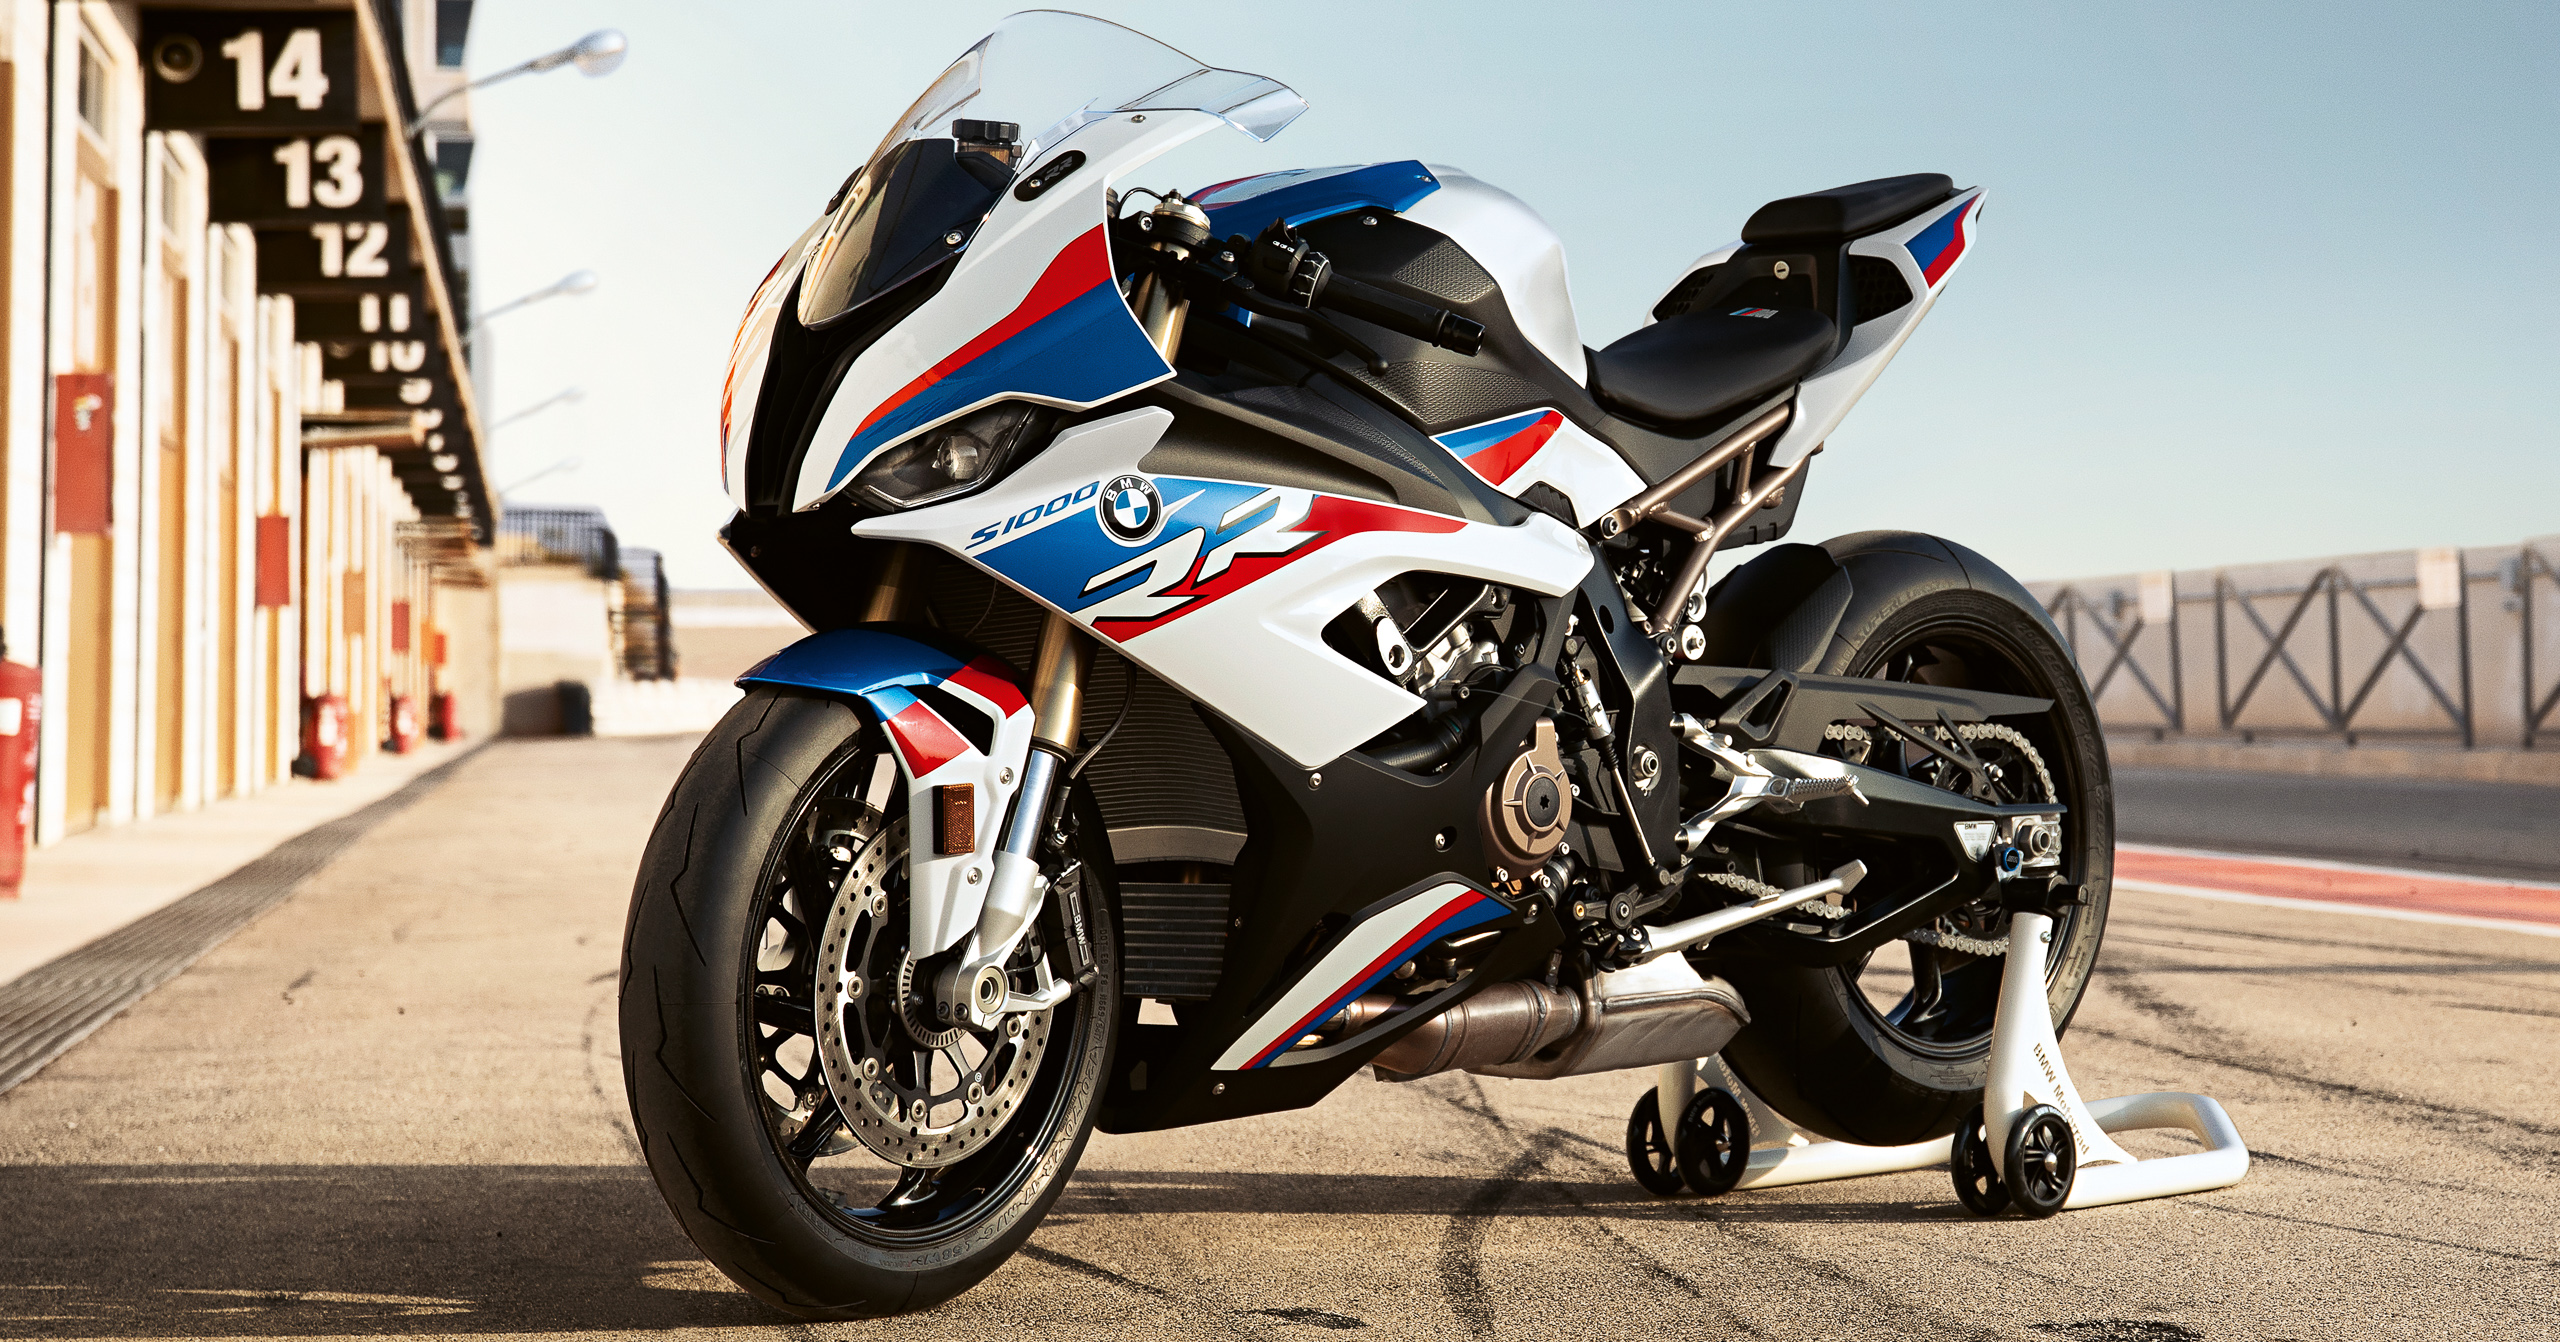 2019 BMW S 1000 RR first ride review - Overdrive